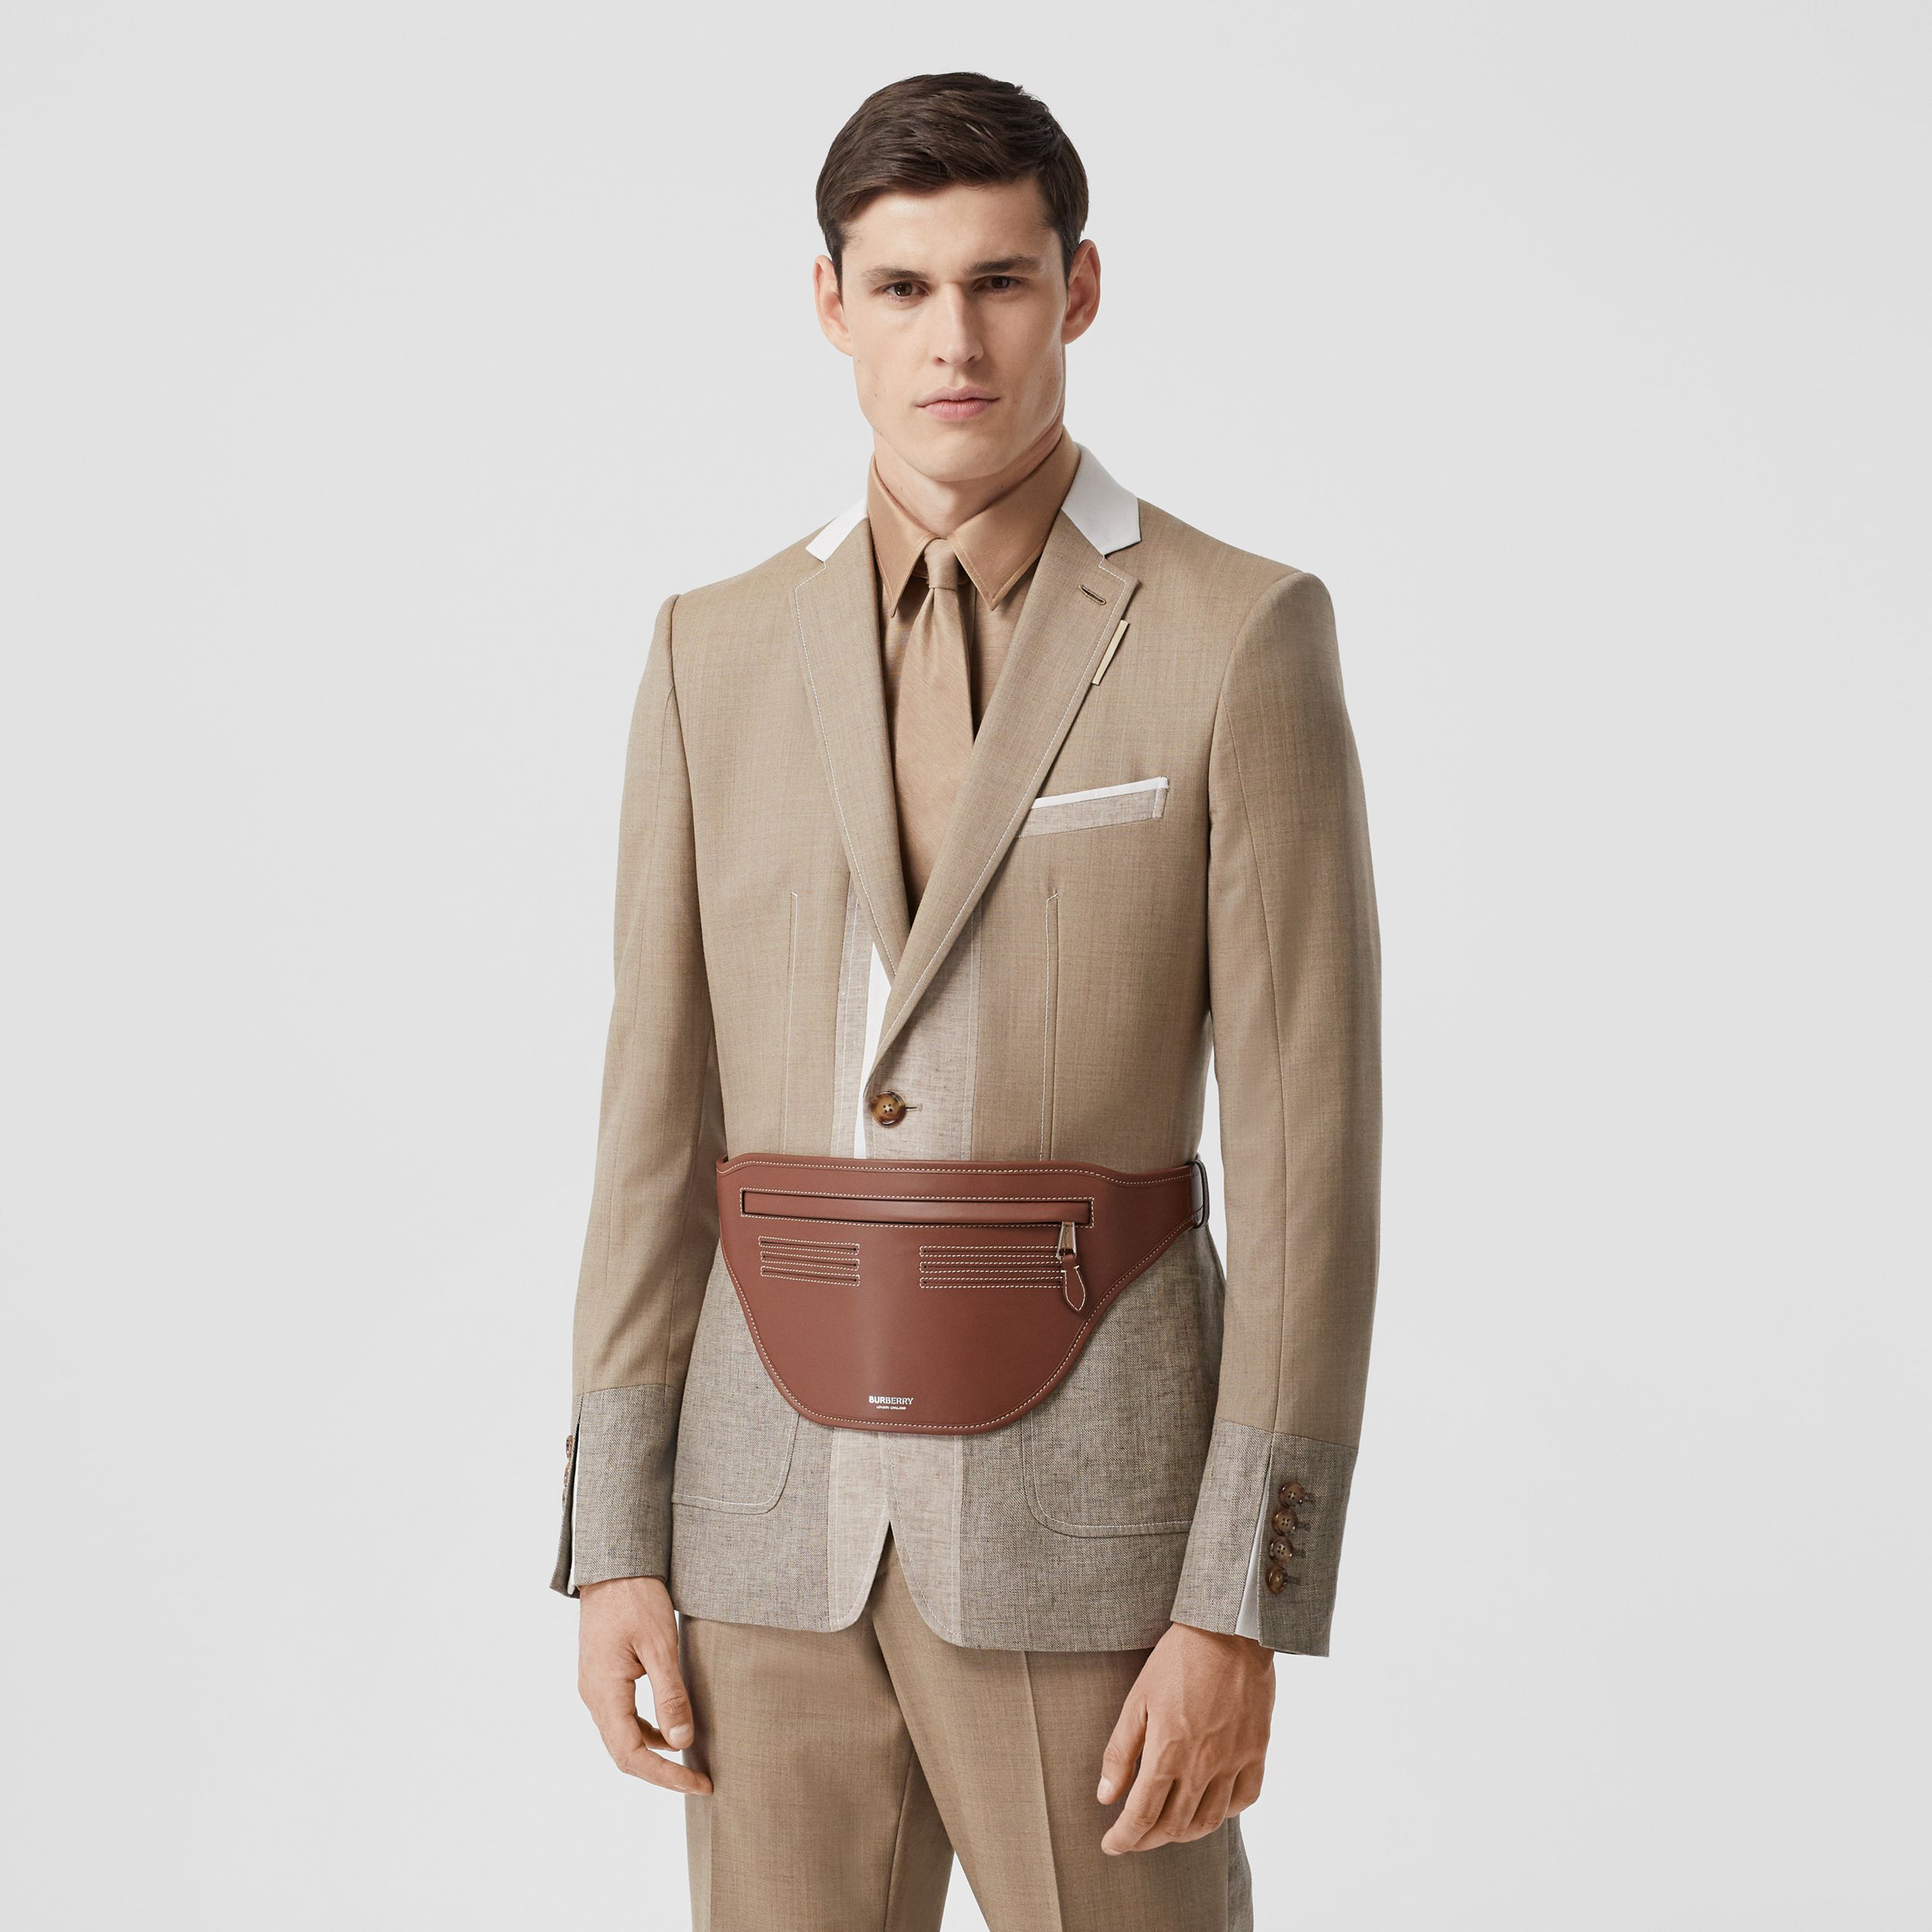 Topstitched Leather Brummell Bum Bag in Tan | Burberry Hong Kong S.A.R. - 4